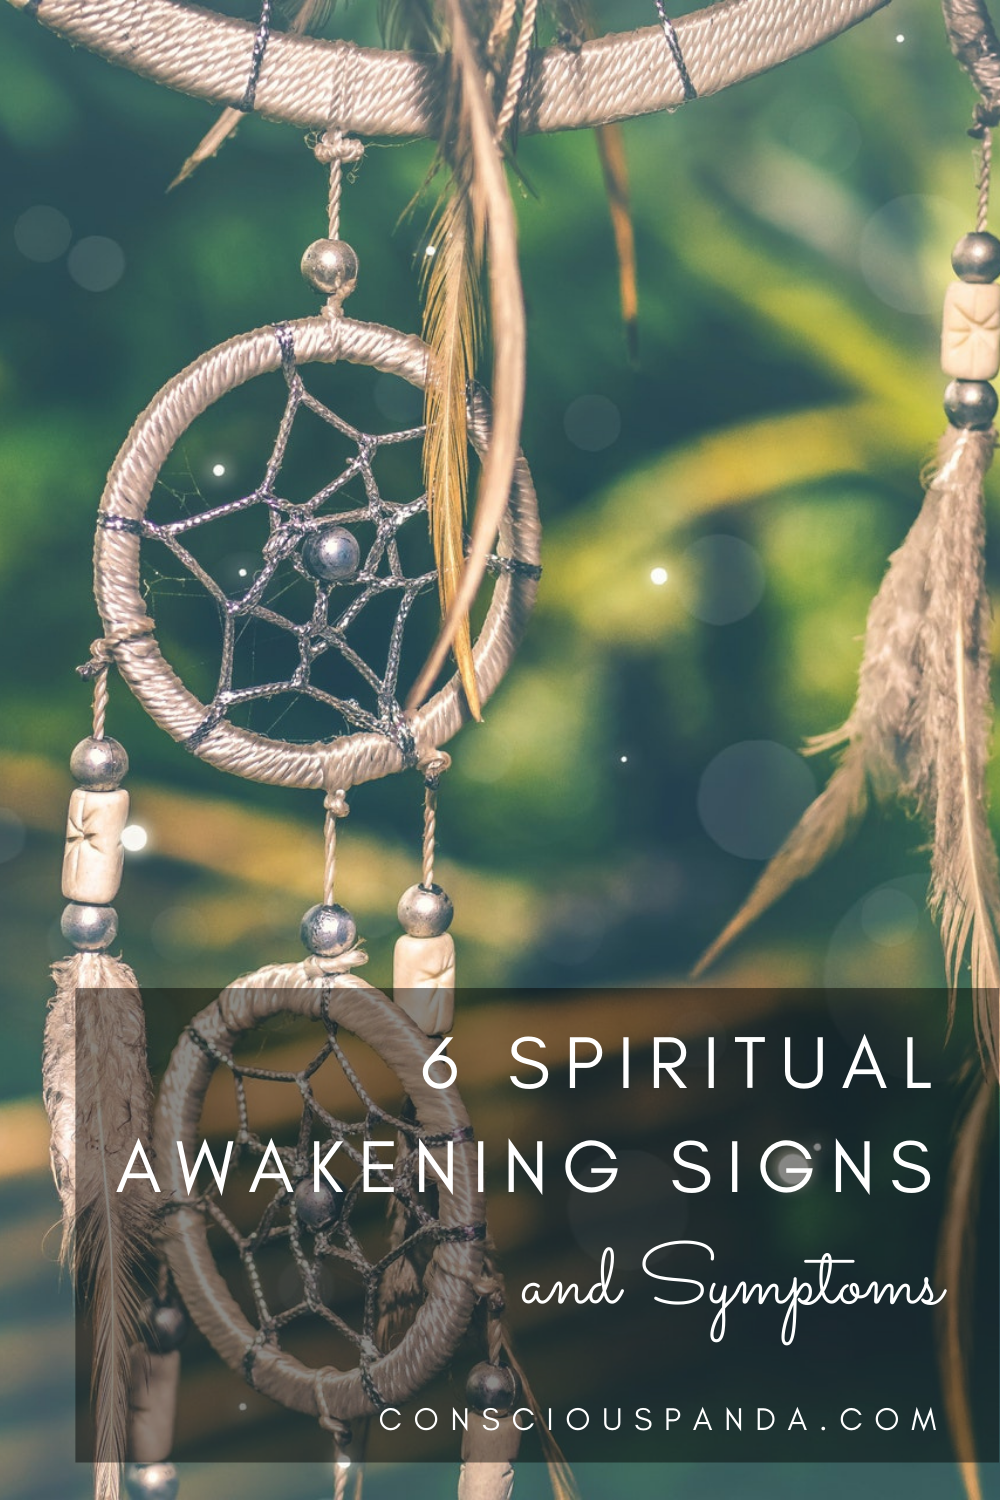 6 Spiritual Awakening Signs and Symptoms